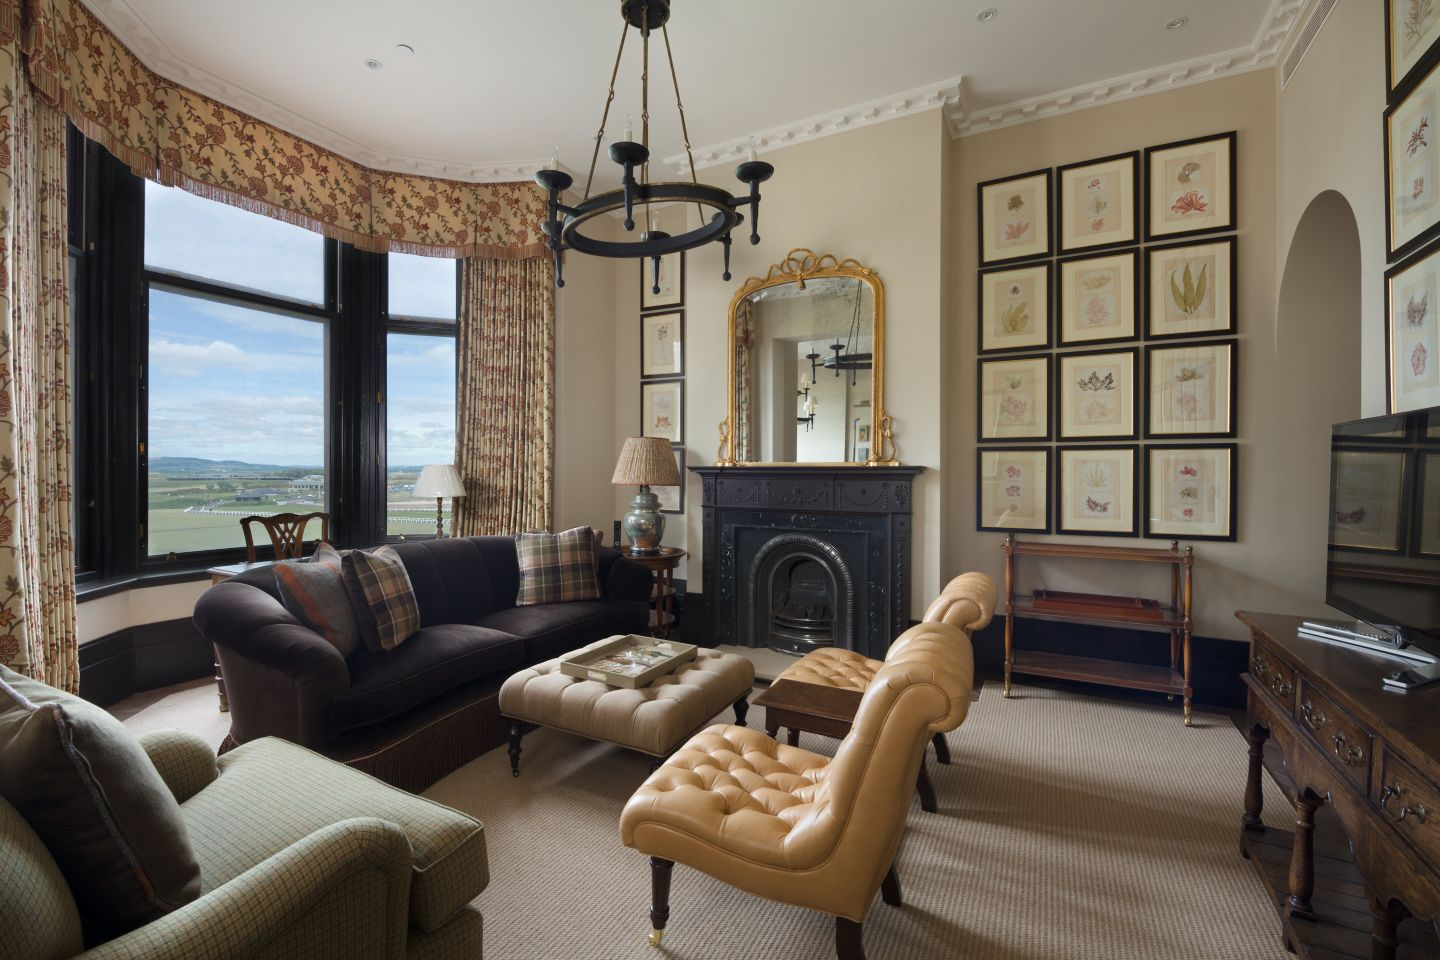 An apartment living area in Hamilton Grand with views out over the Old Course Golf Course, St Andrews